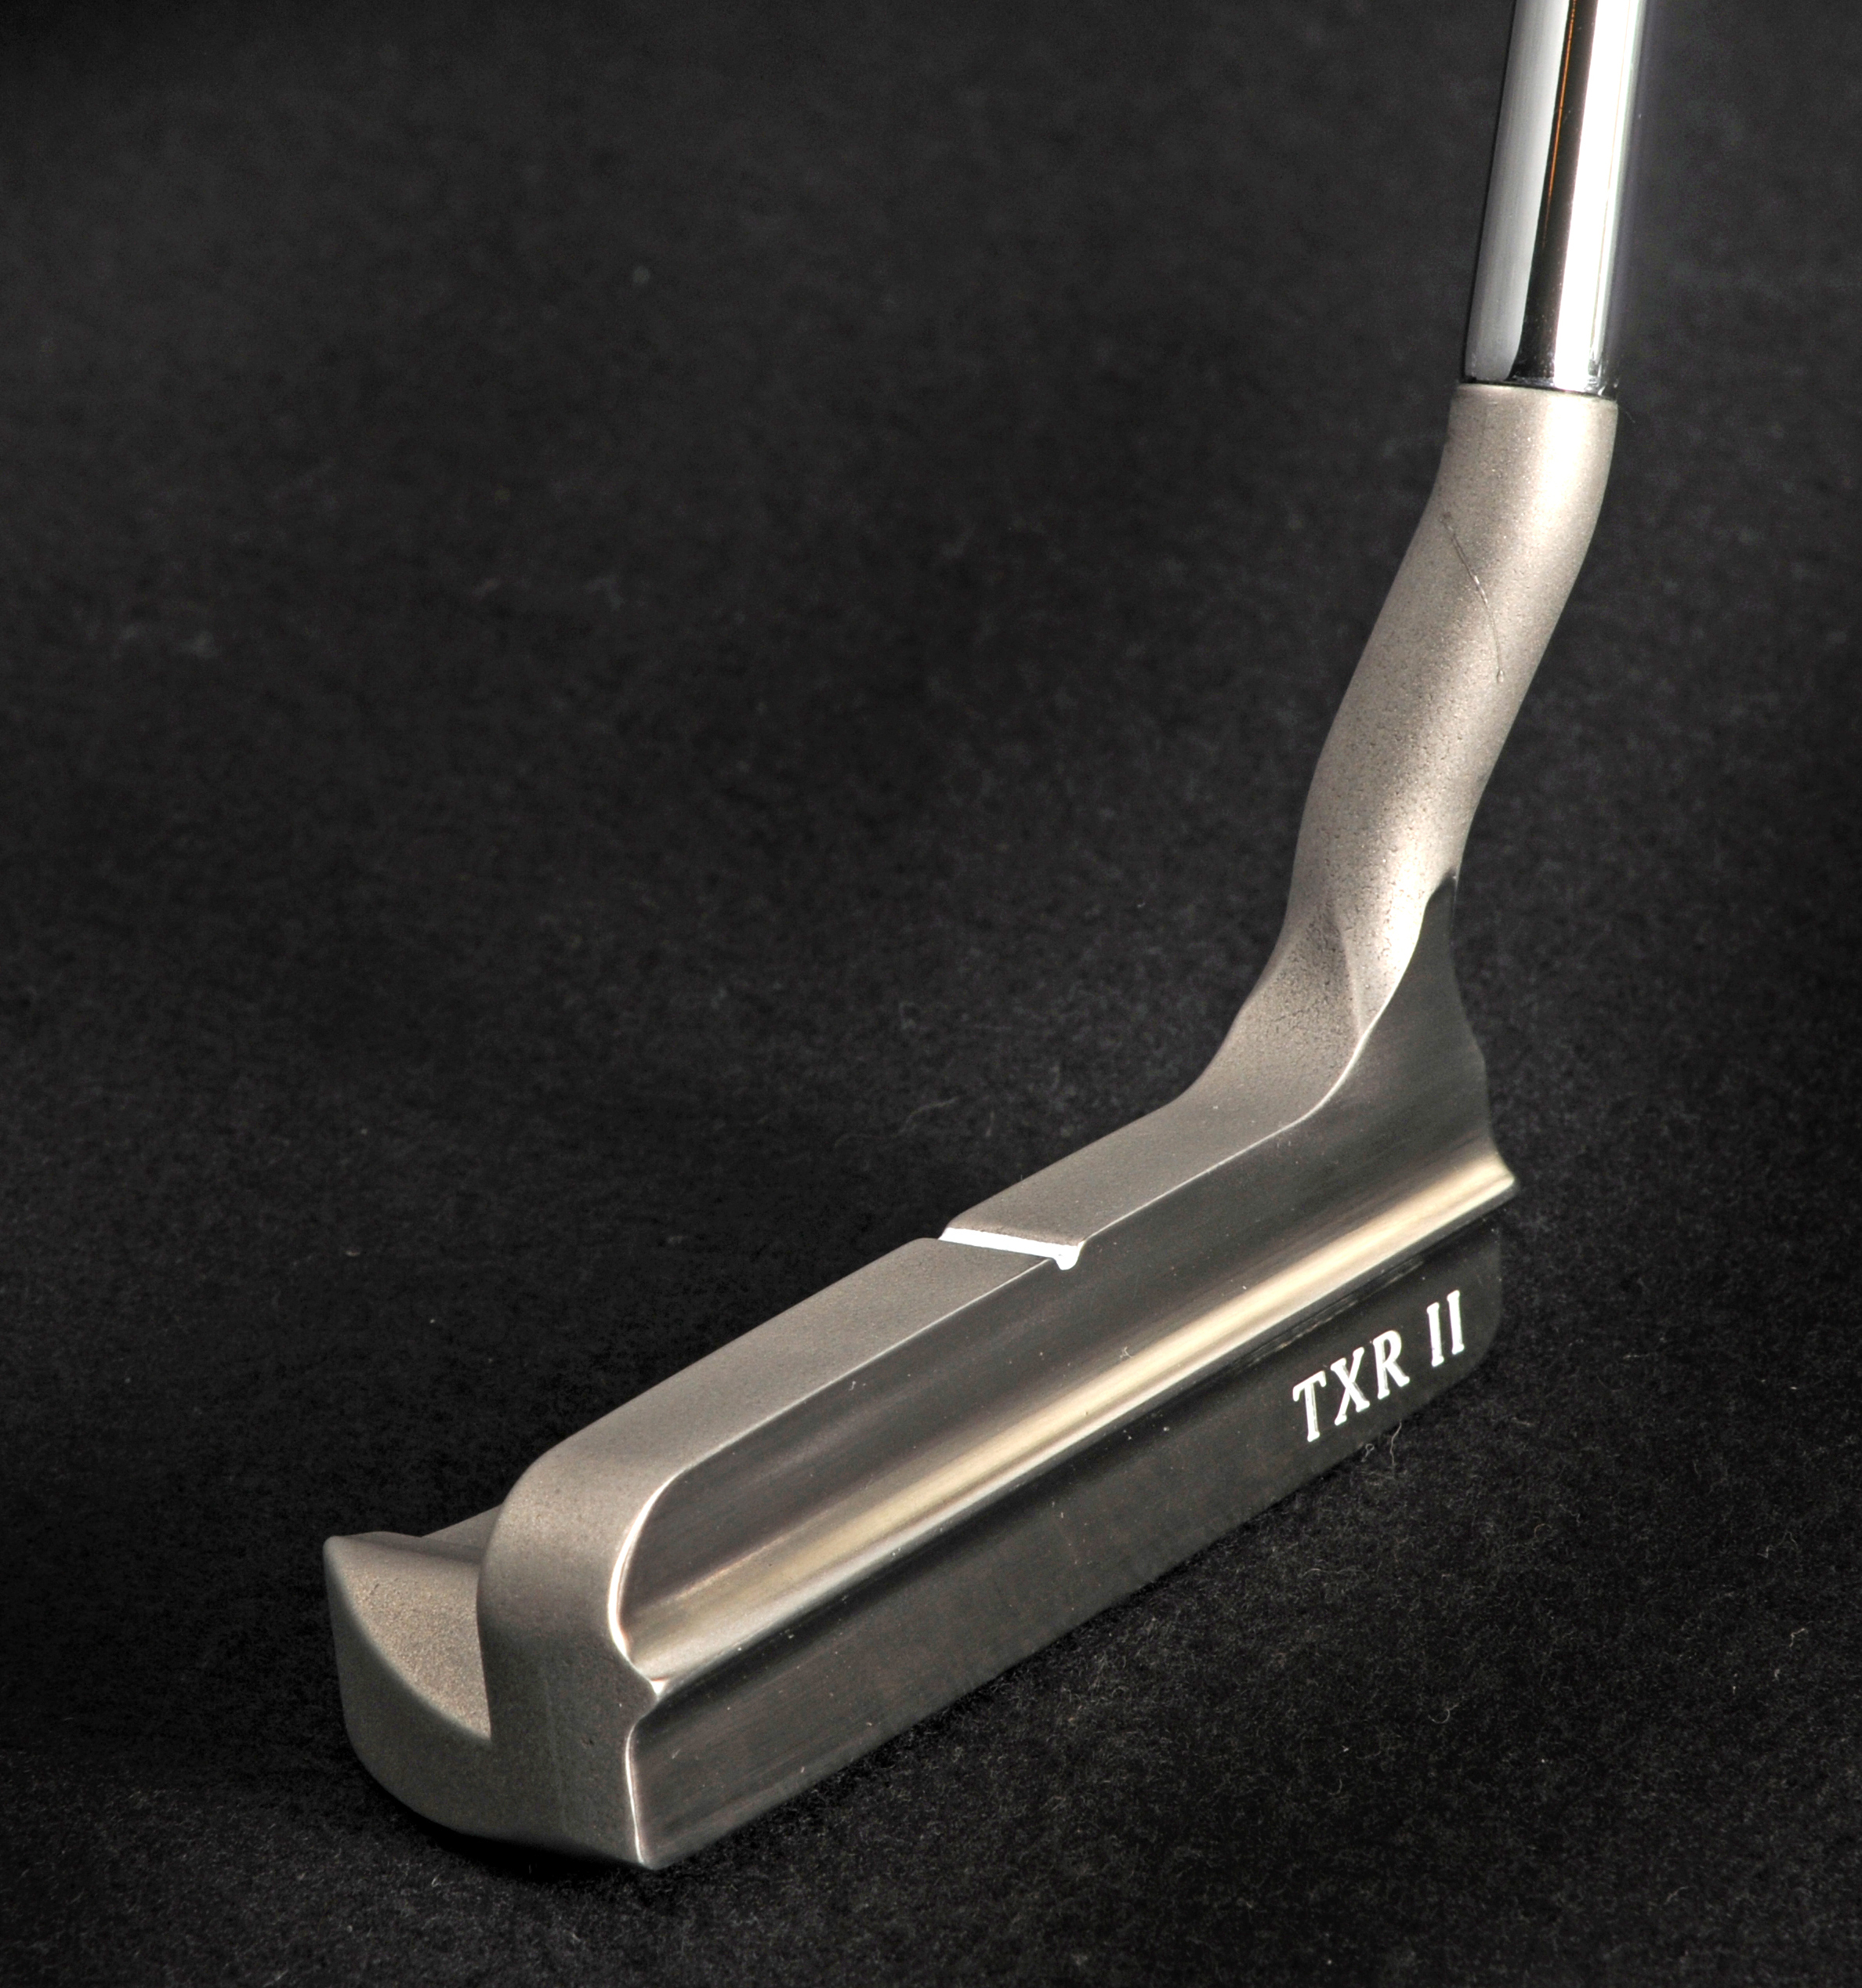 Utopia TRX 2 putter